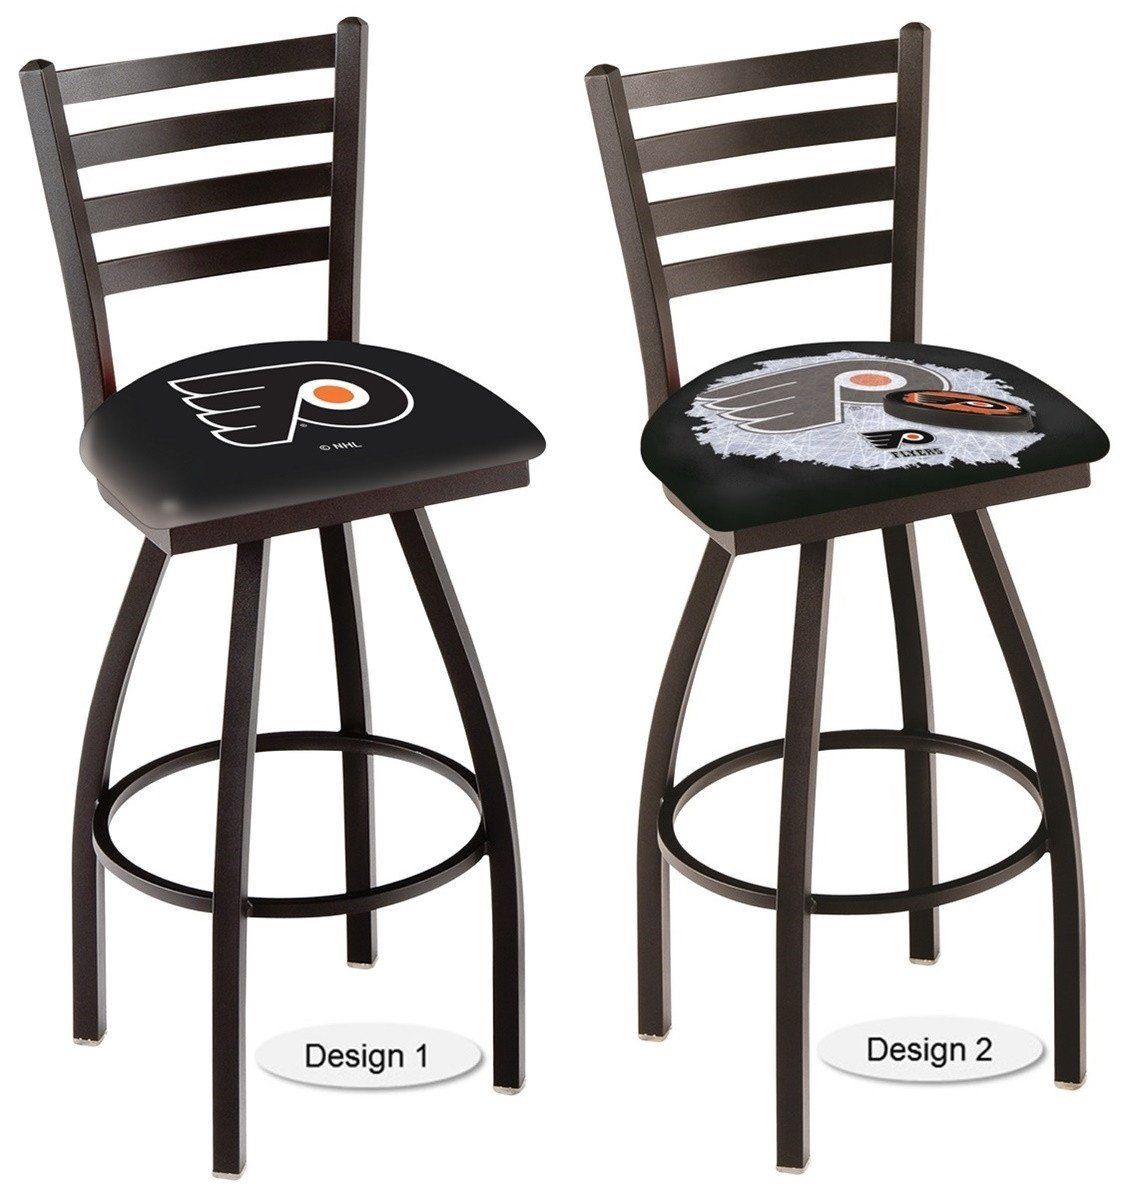 The Officially Licensed Nhl Philadelphia Flyers Bar Stool Carries A Defined Black Ladder Style